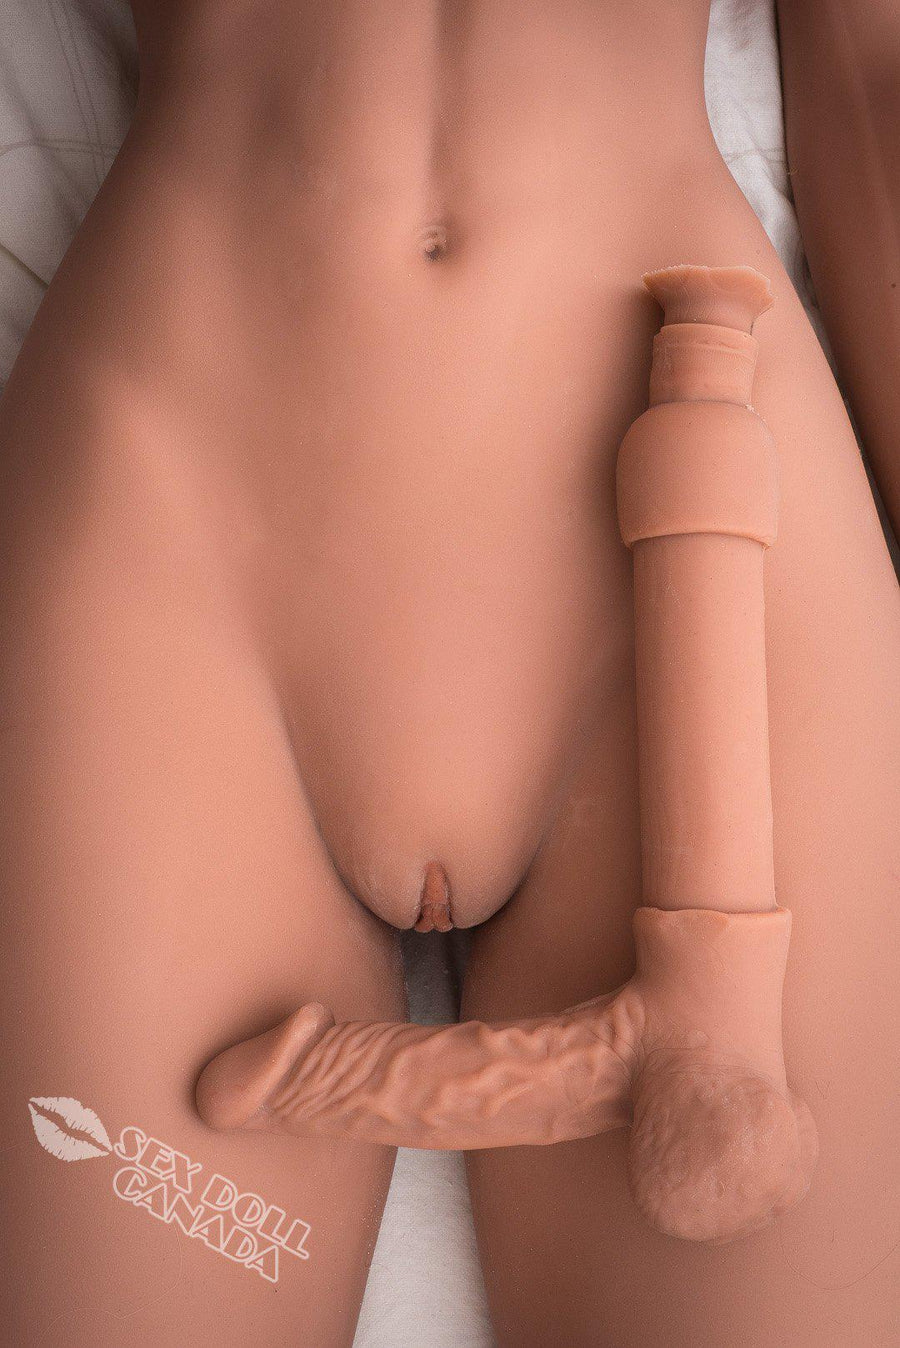 Penis Add-On (from WM) Accessory Life Size Lifelike Adult Real Realistic Love Sex Doll Canada